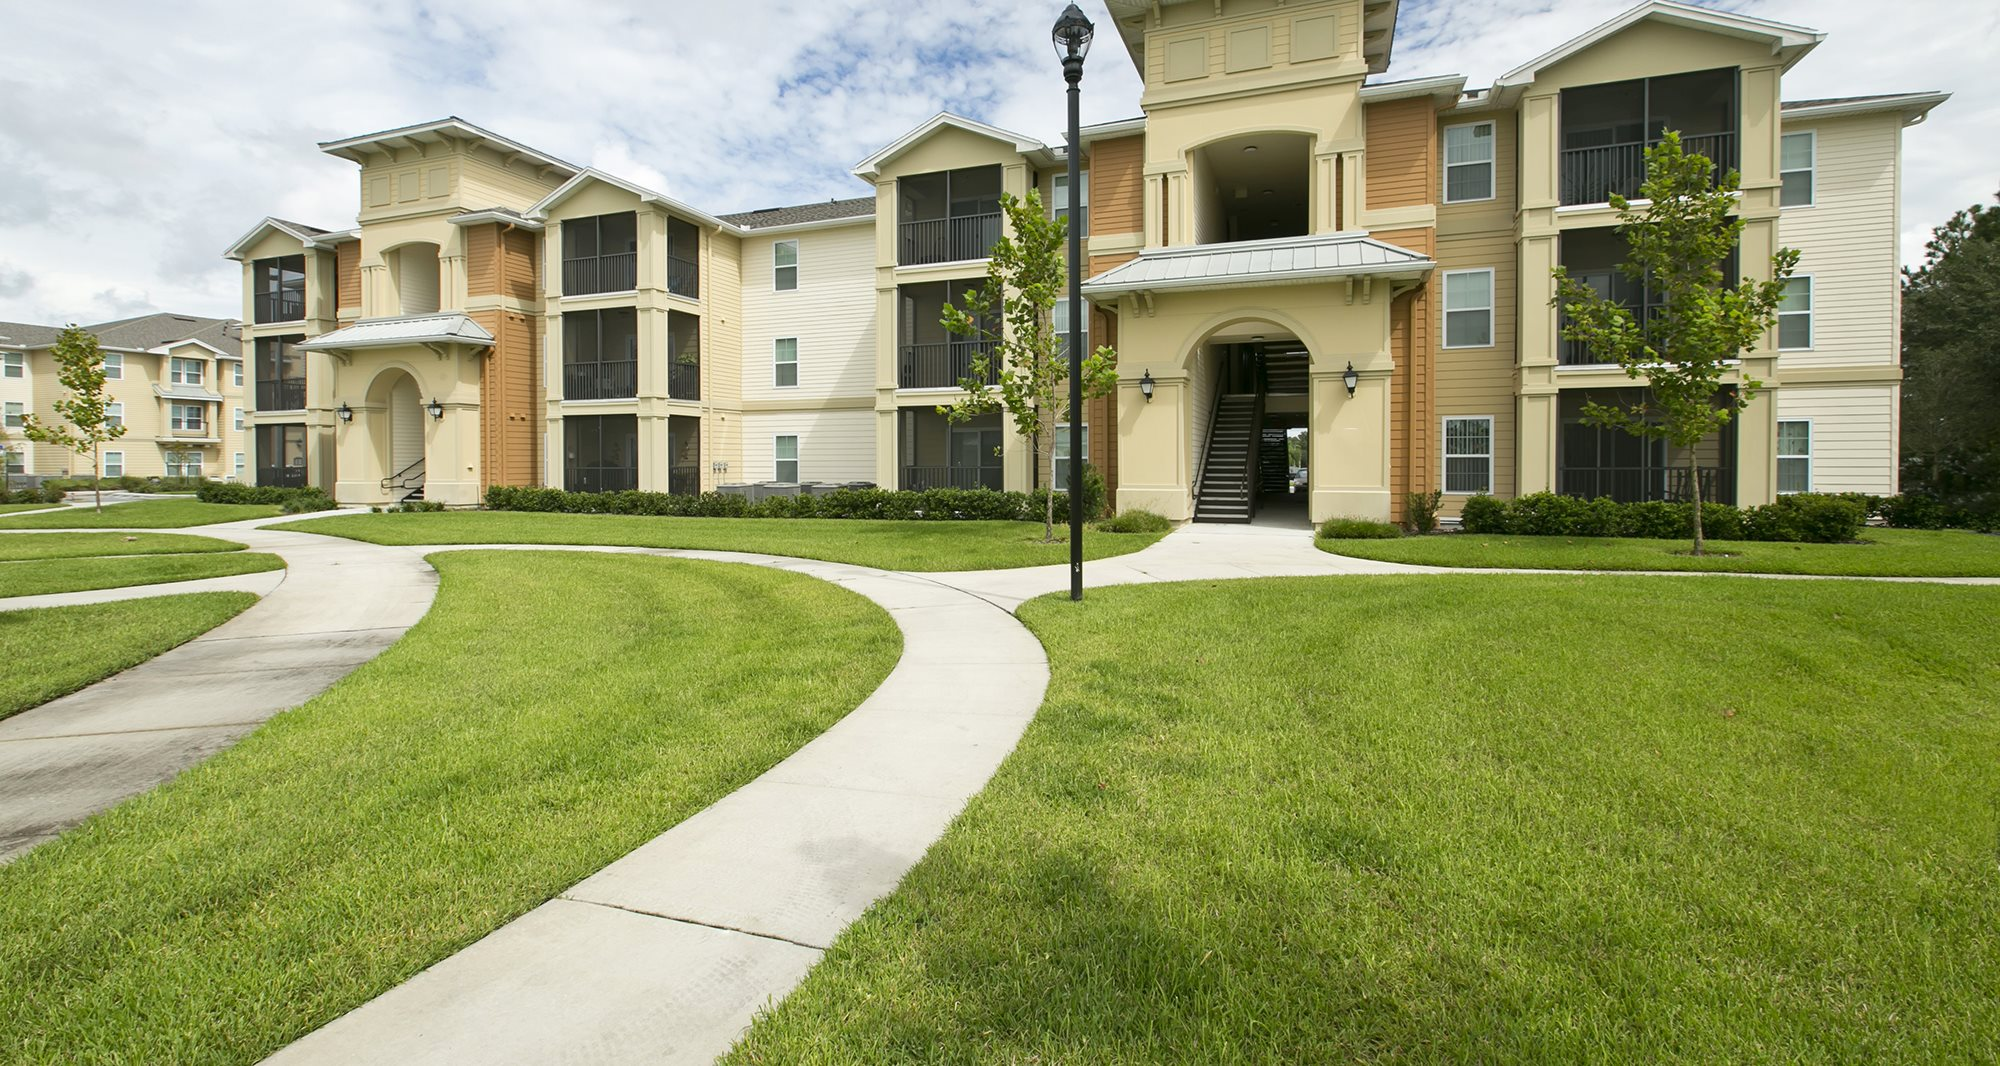 Fountains at San Remo Court Apartments for rent in Kissimmee, FL. Make this community your new home or visit other Concord Rents communities at ConcordRents.com. Building exterior